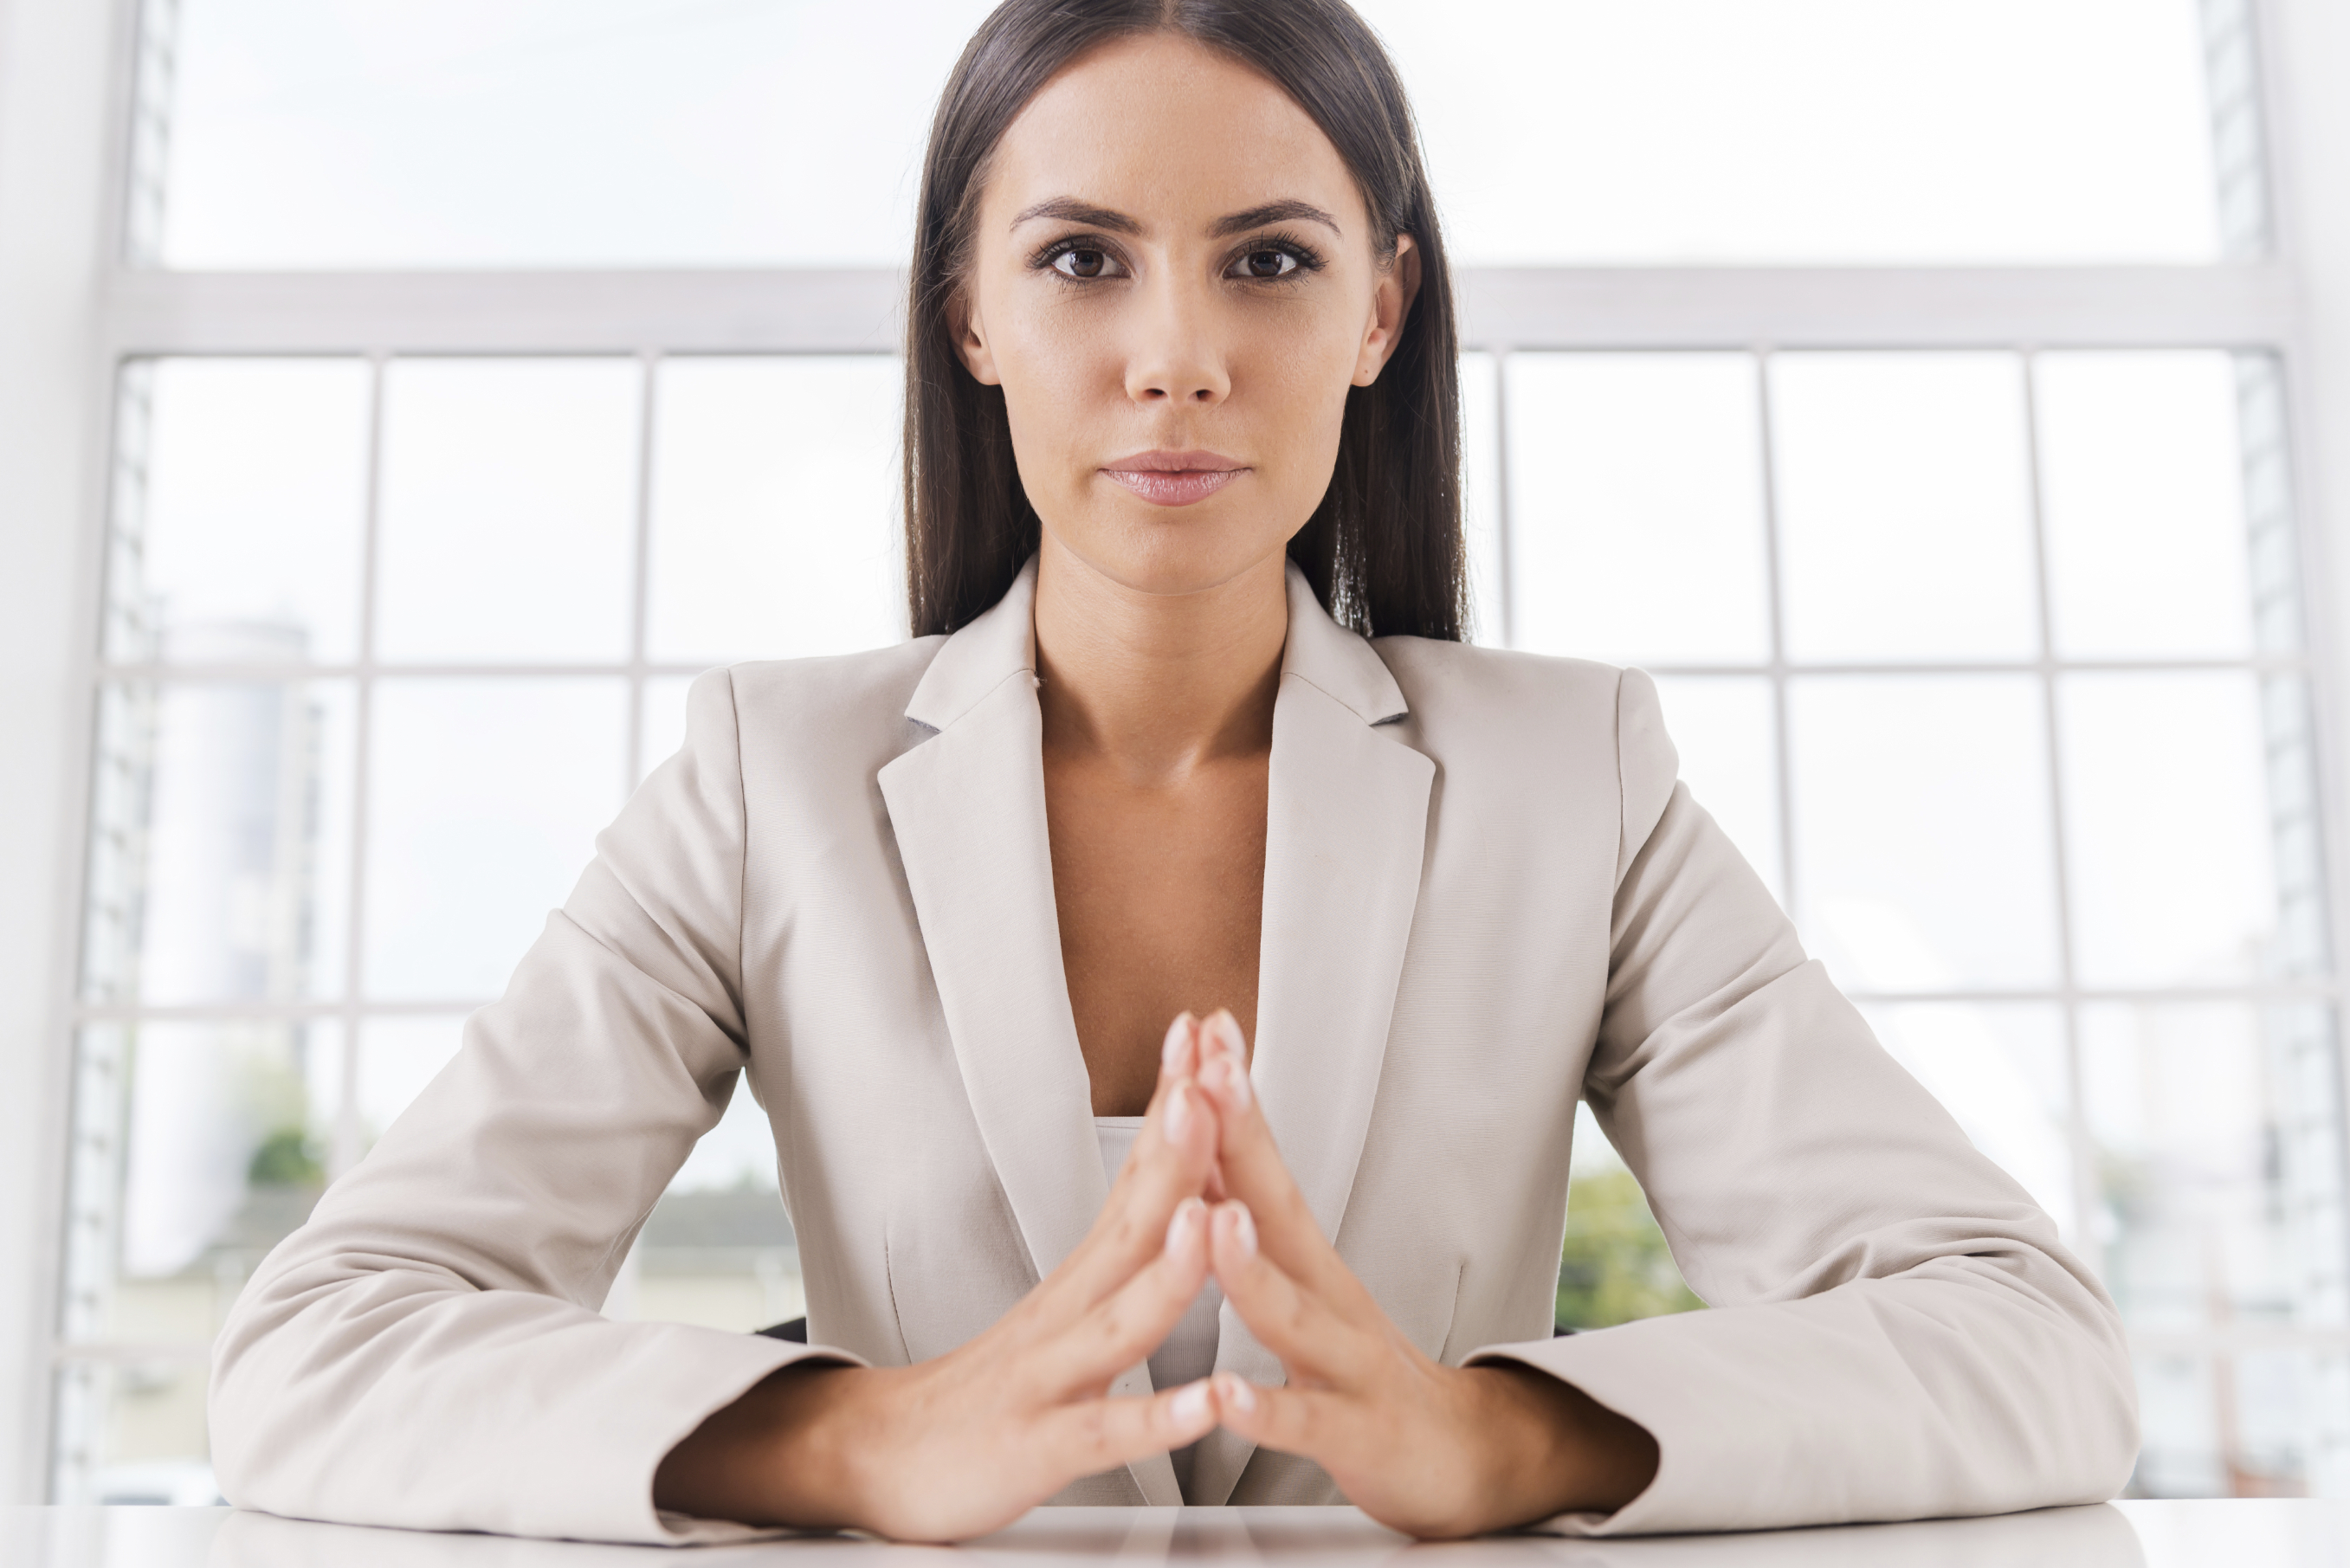 Women in business – a growth story for wealth managers